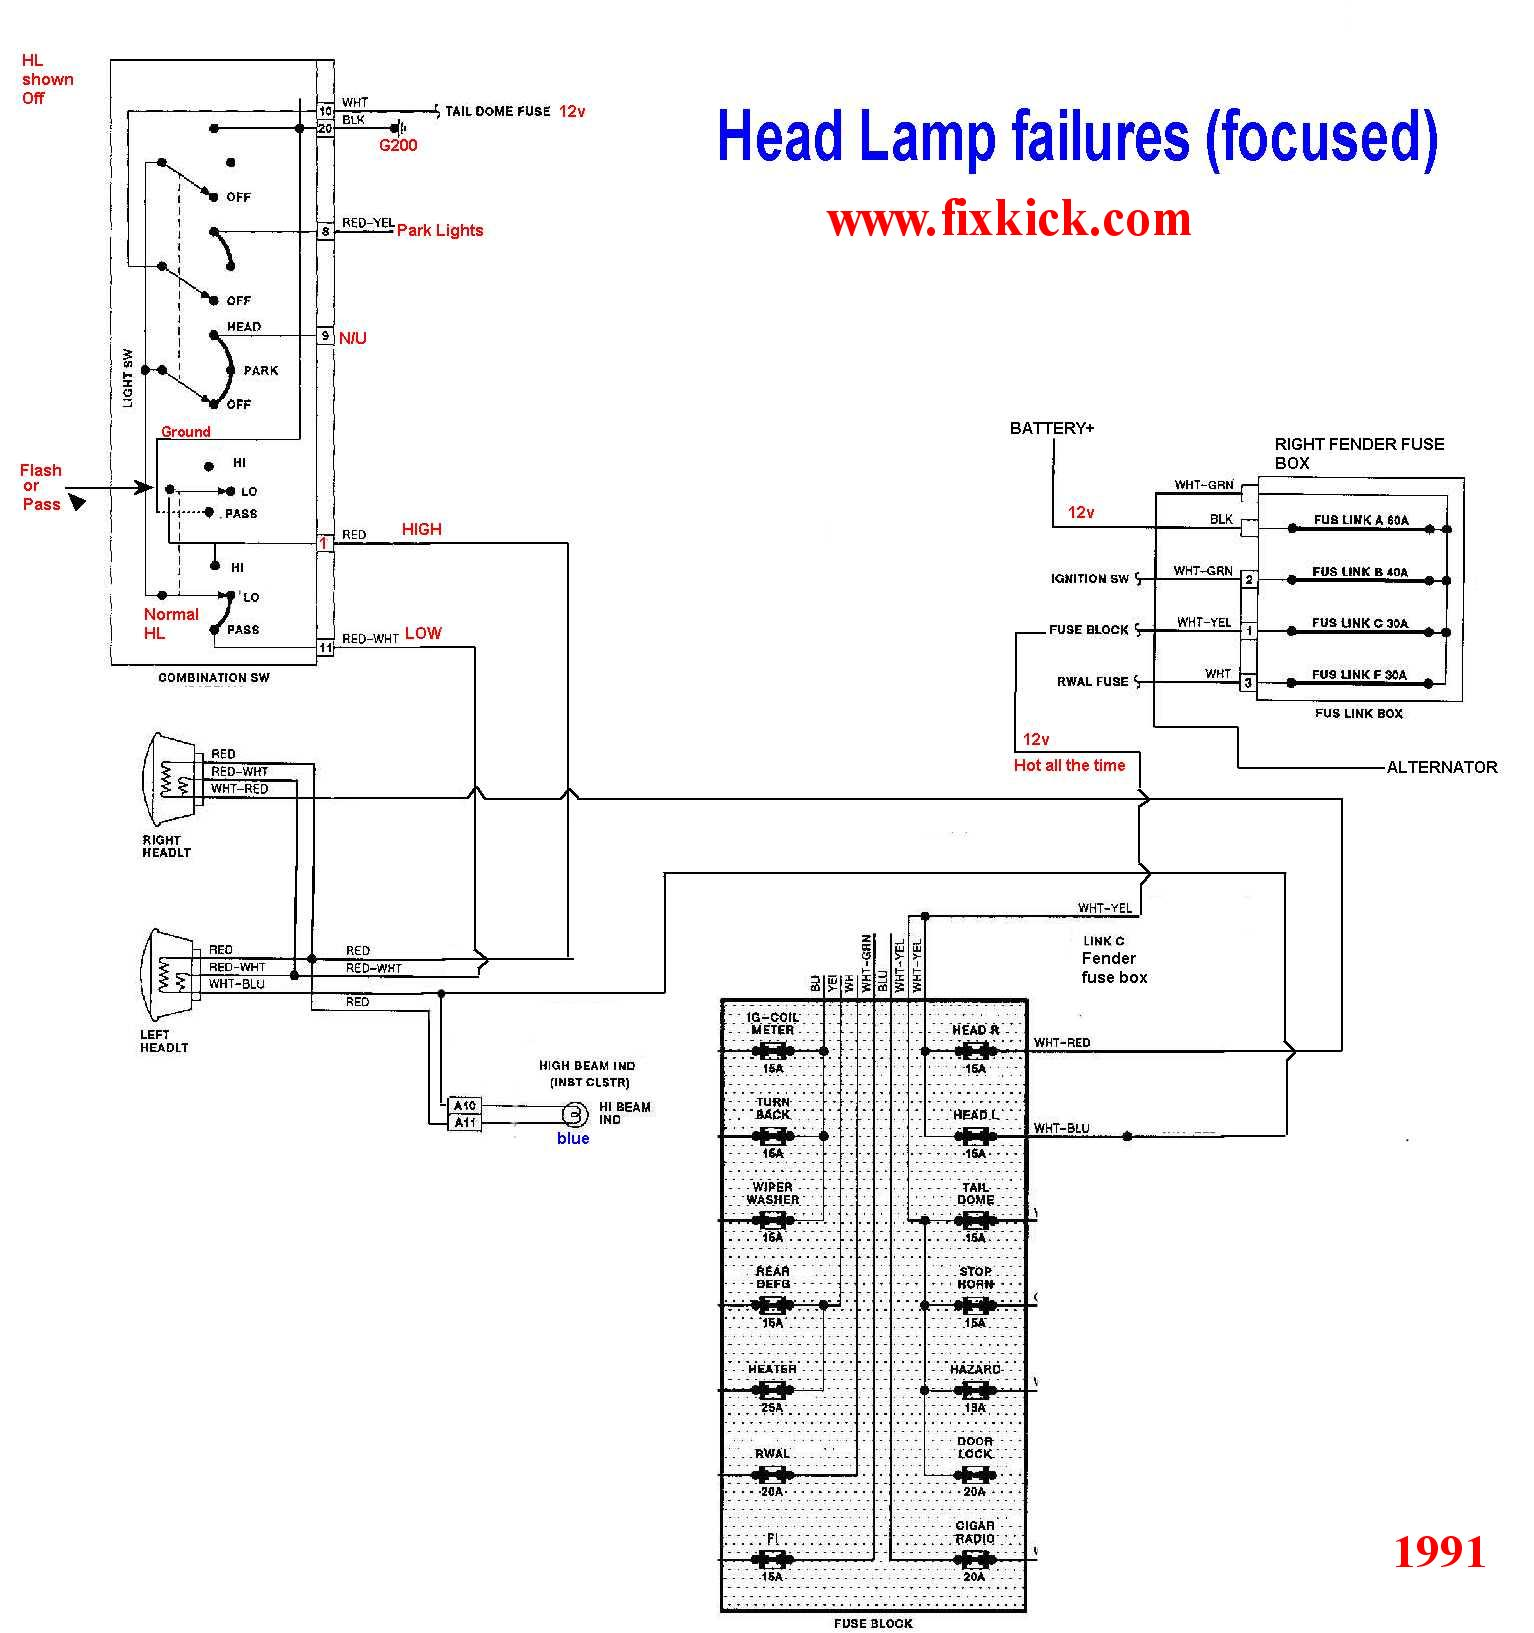 hight resolution of sidekick fuse box diagram besides 1995 nissan pick up wiring diagram 1998 chevy tracker fuse box